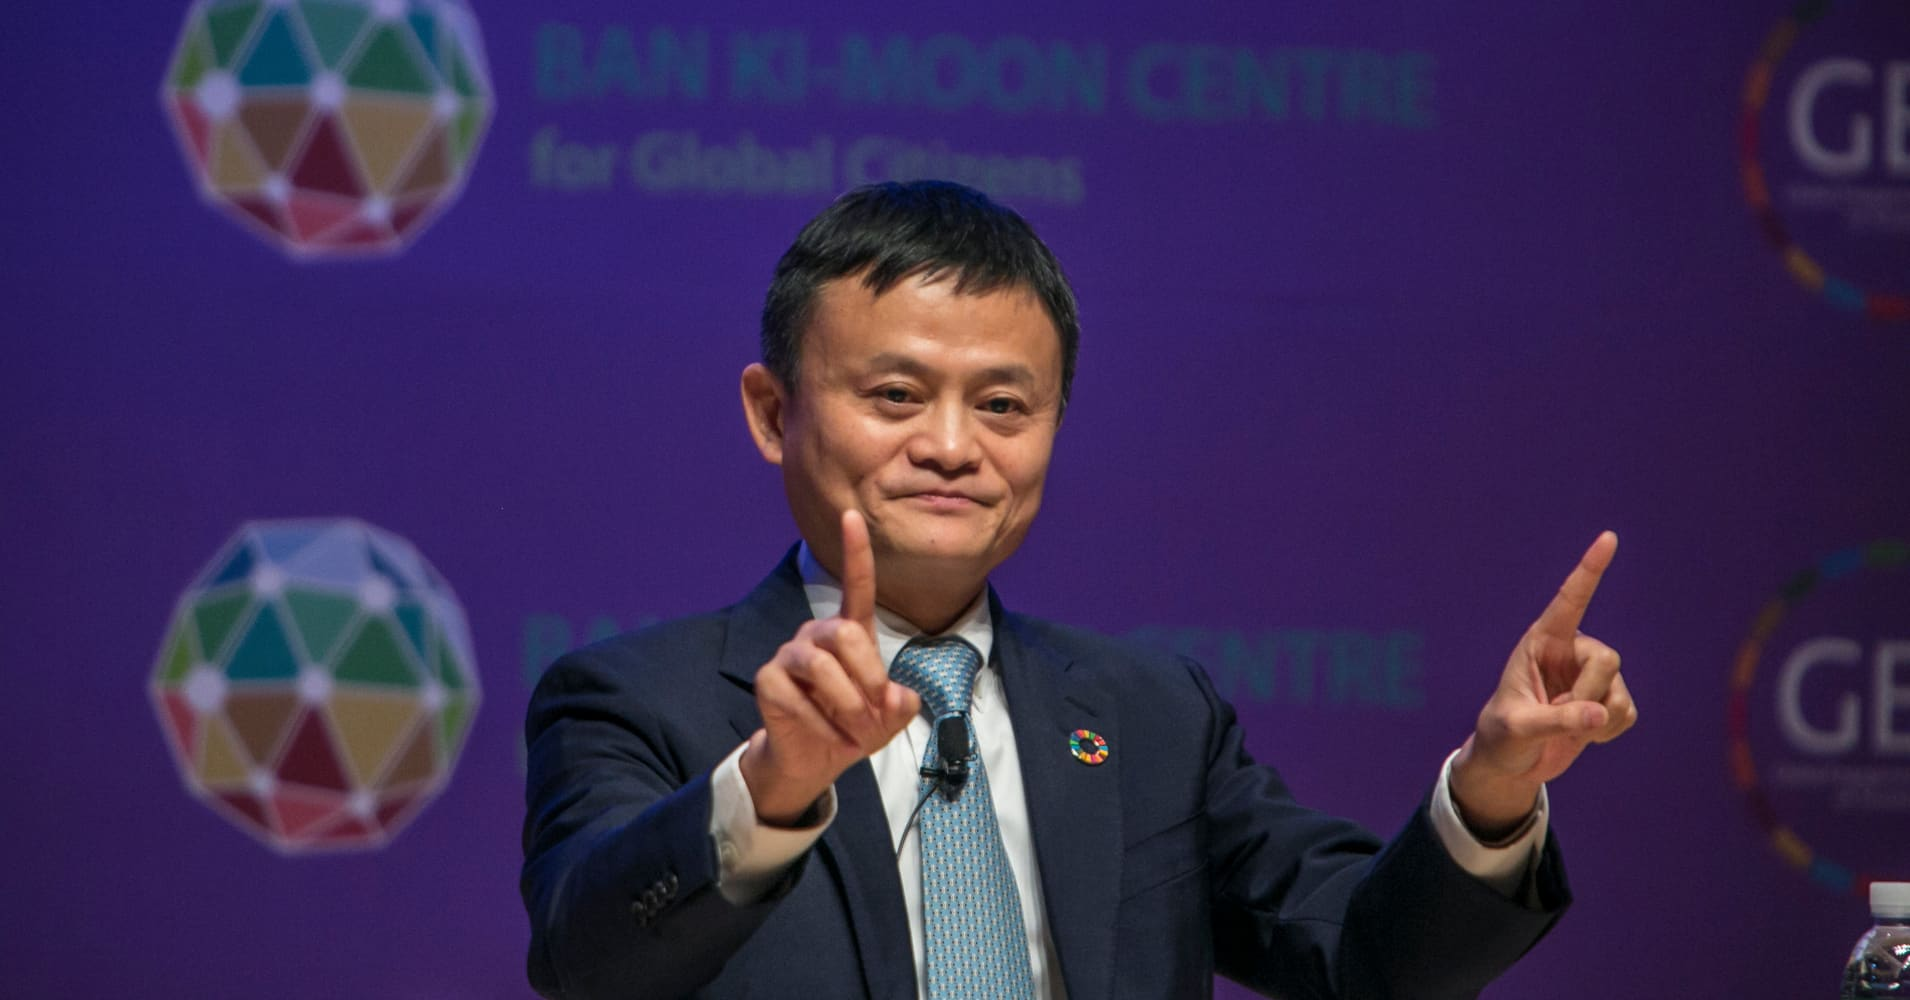 Want to work for Jack Ma? These are the traits he looks for in a candidate